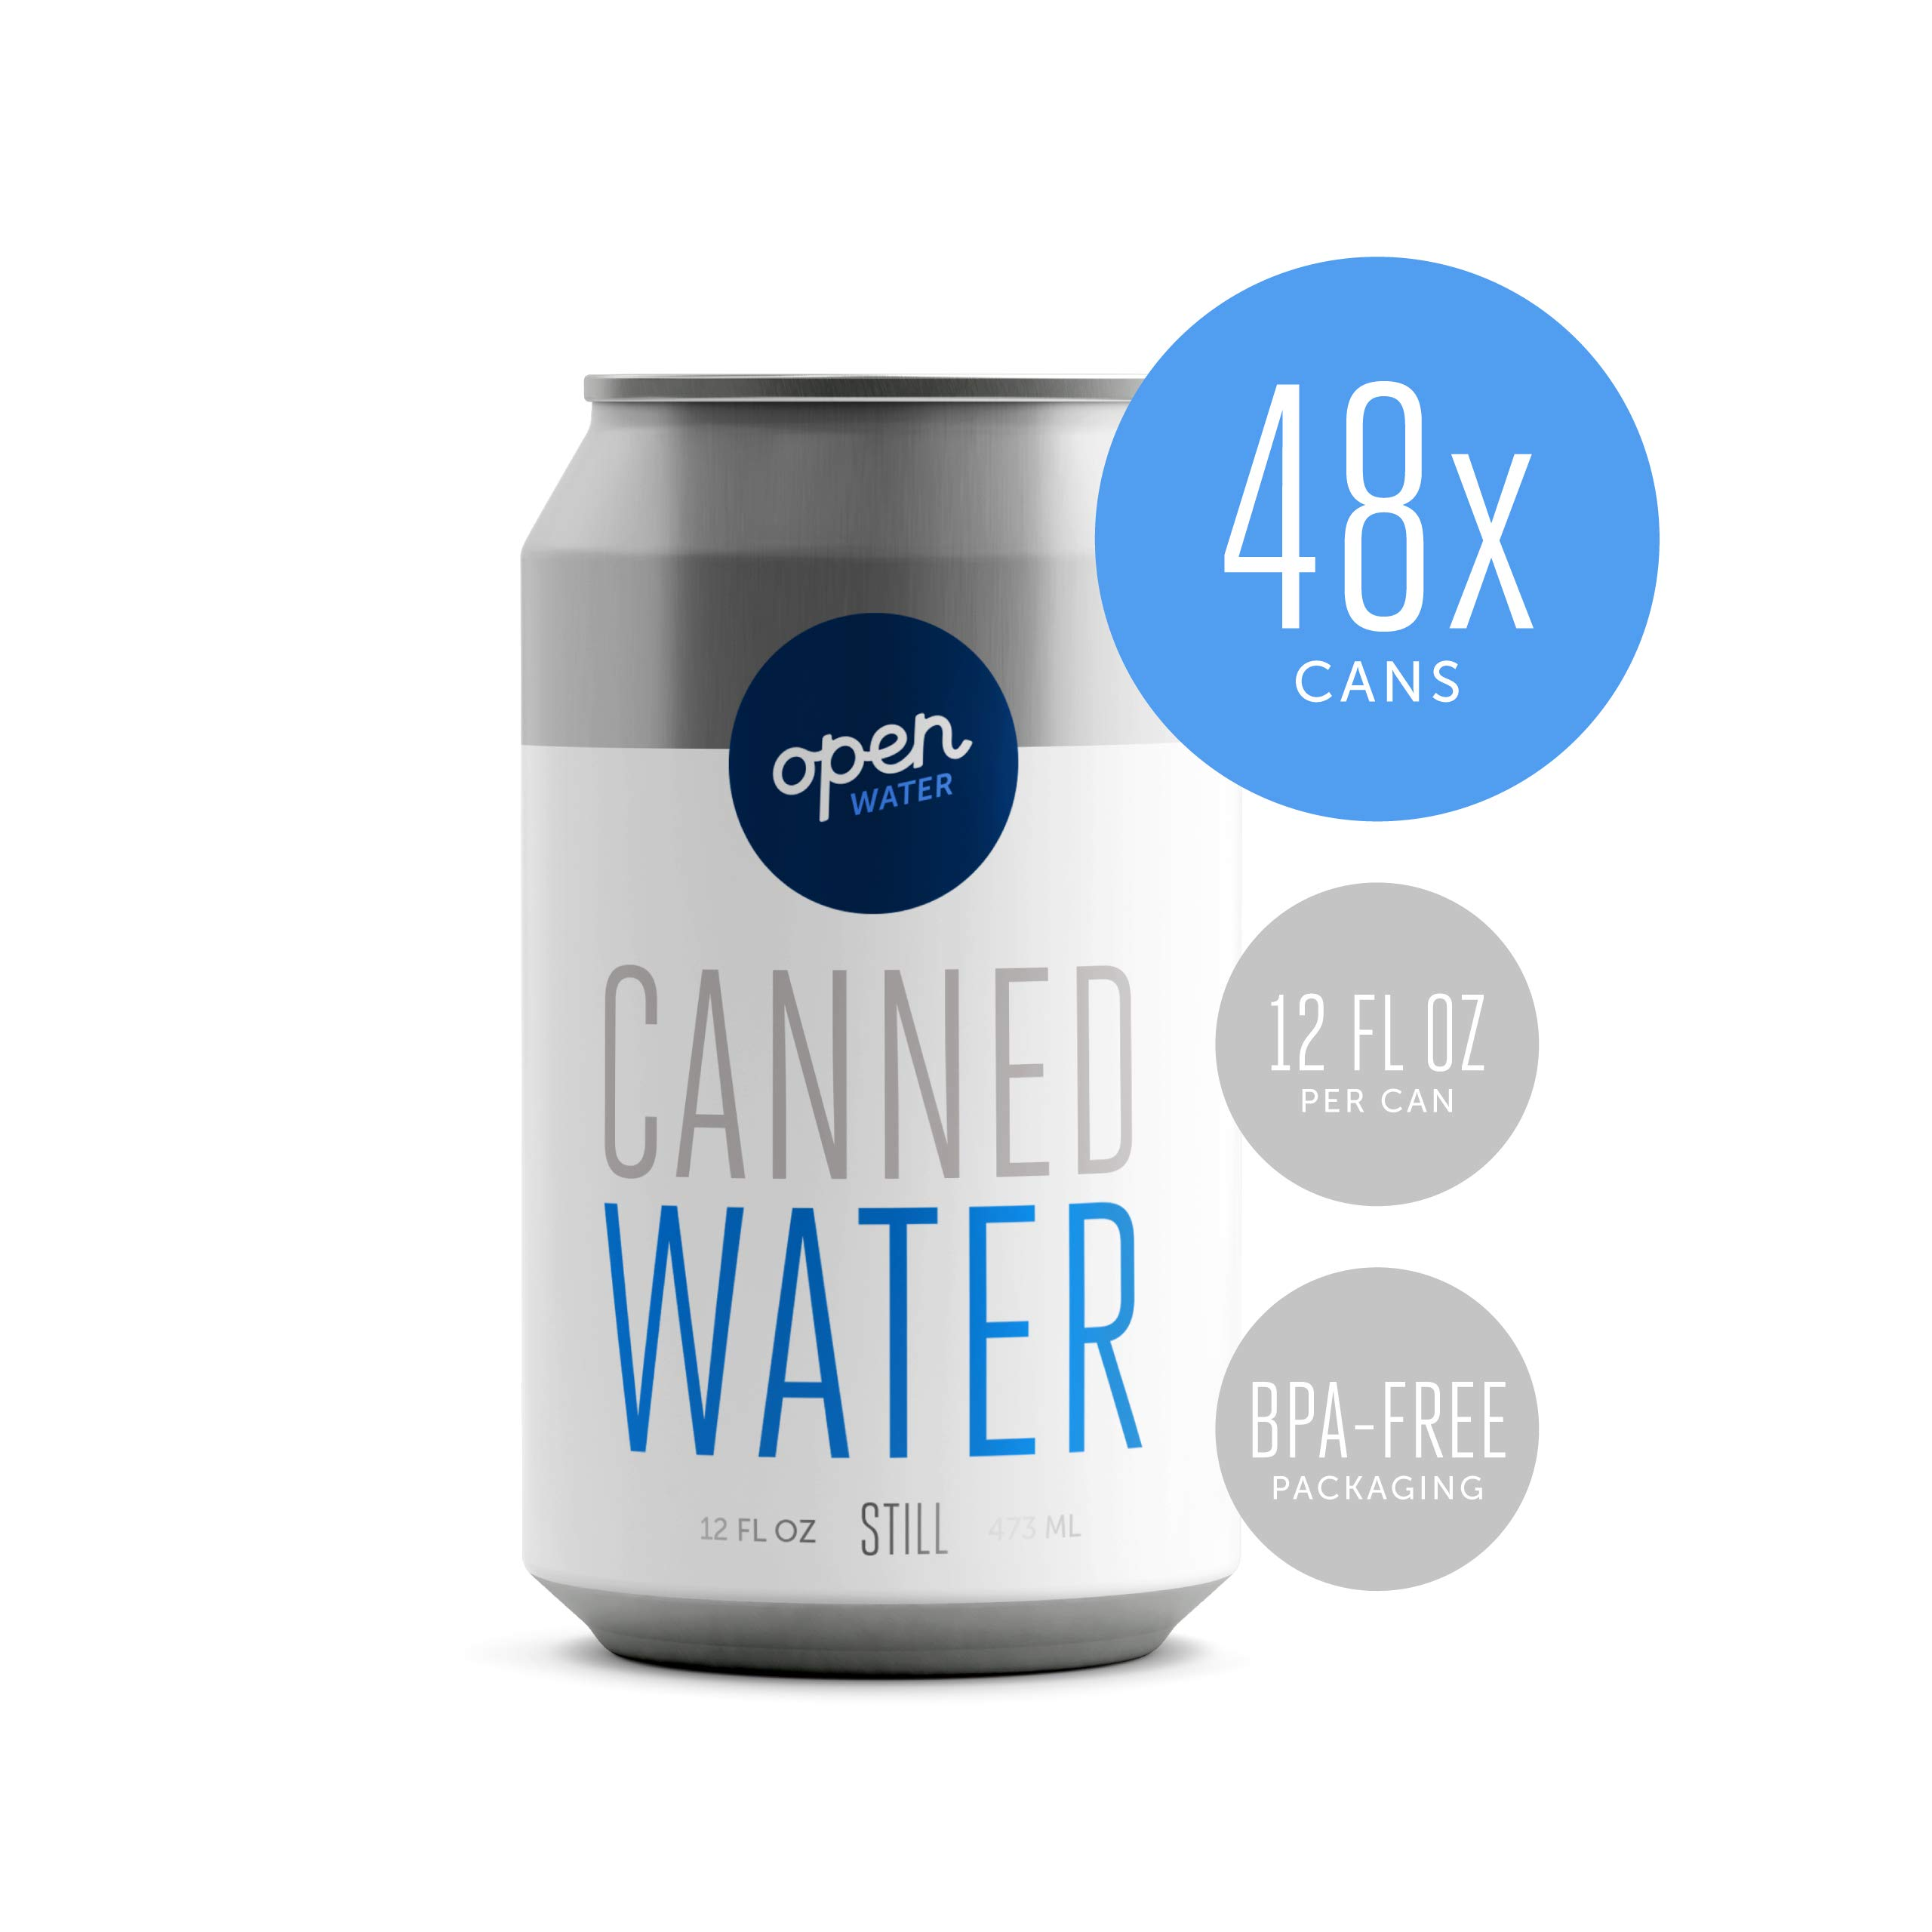 Open Water - Still Canned Drinking Water in 12-ounce Aluminum Cans (4 Cases, 48 cans - Still) | BPA-free and Eco friendly